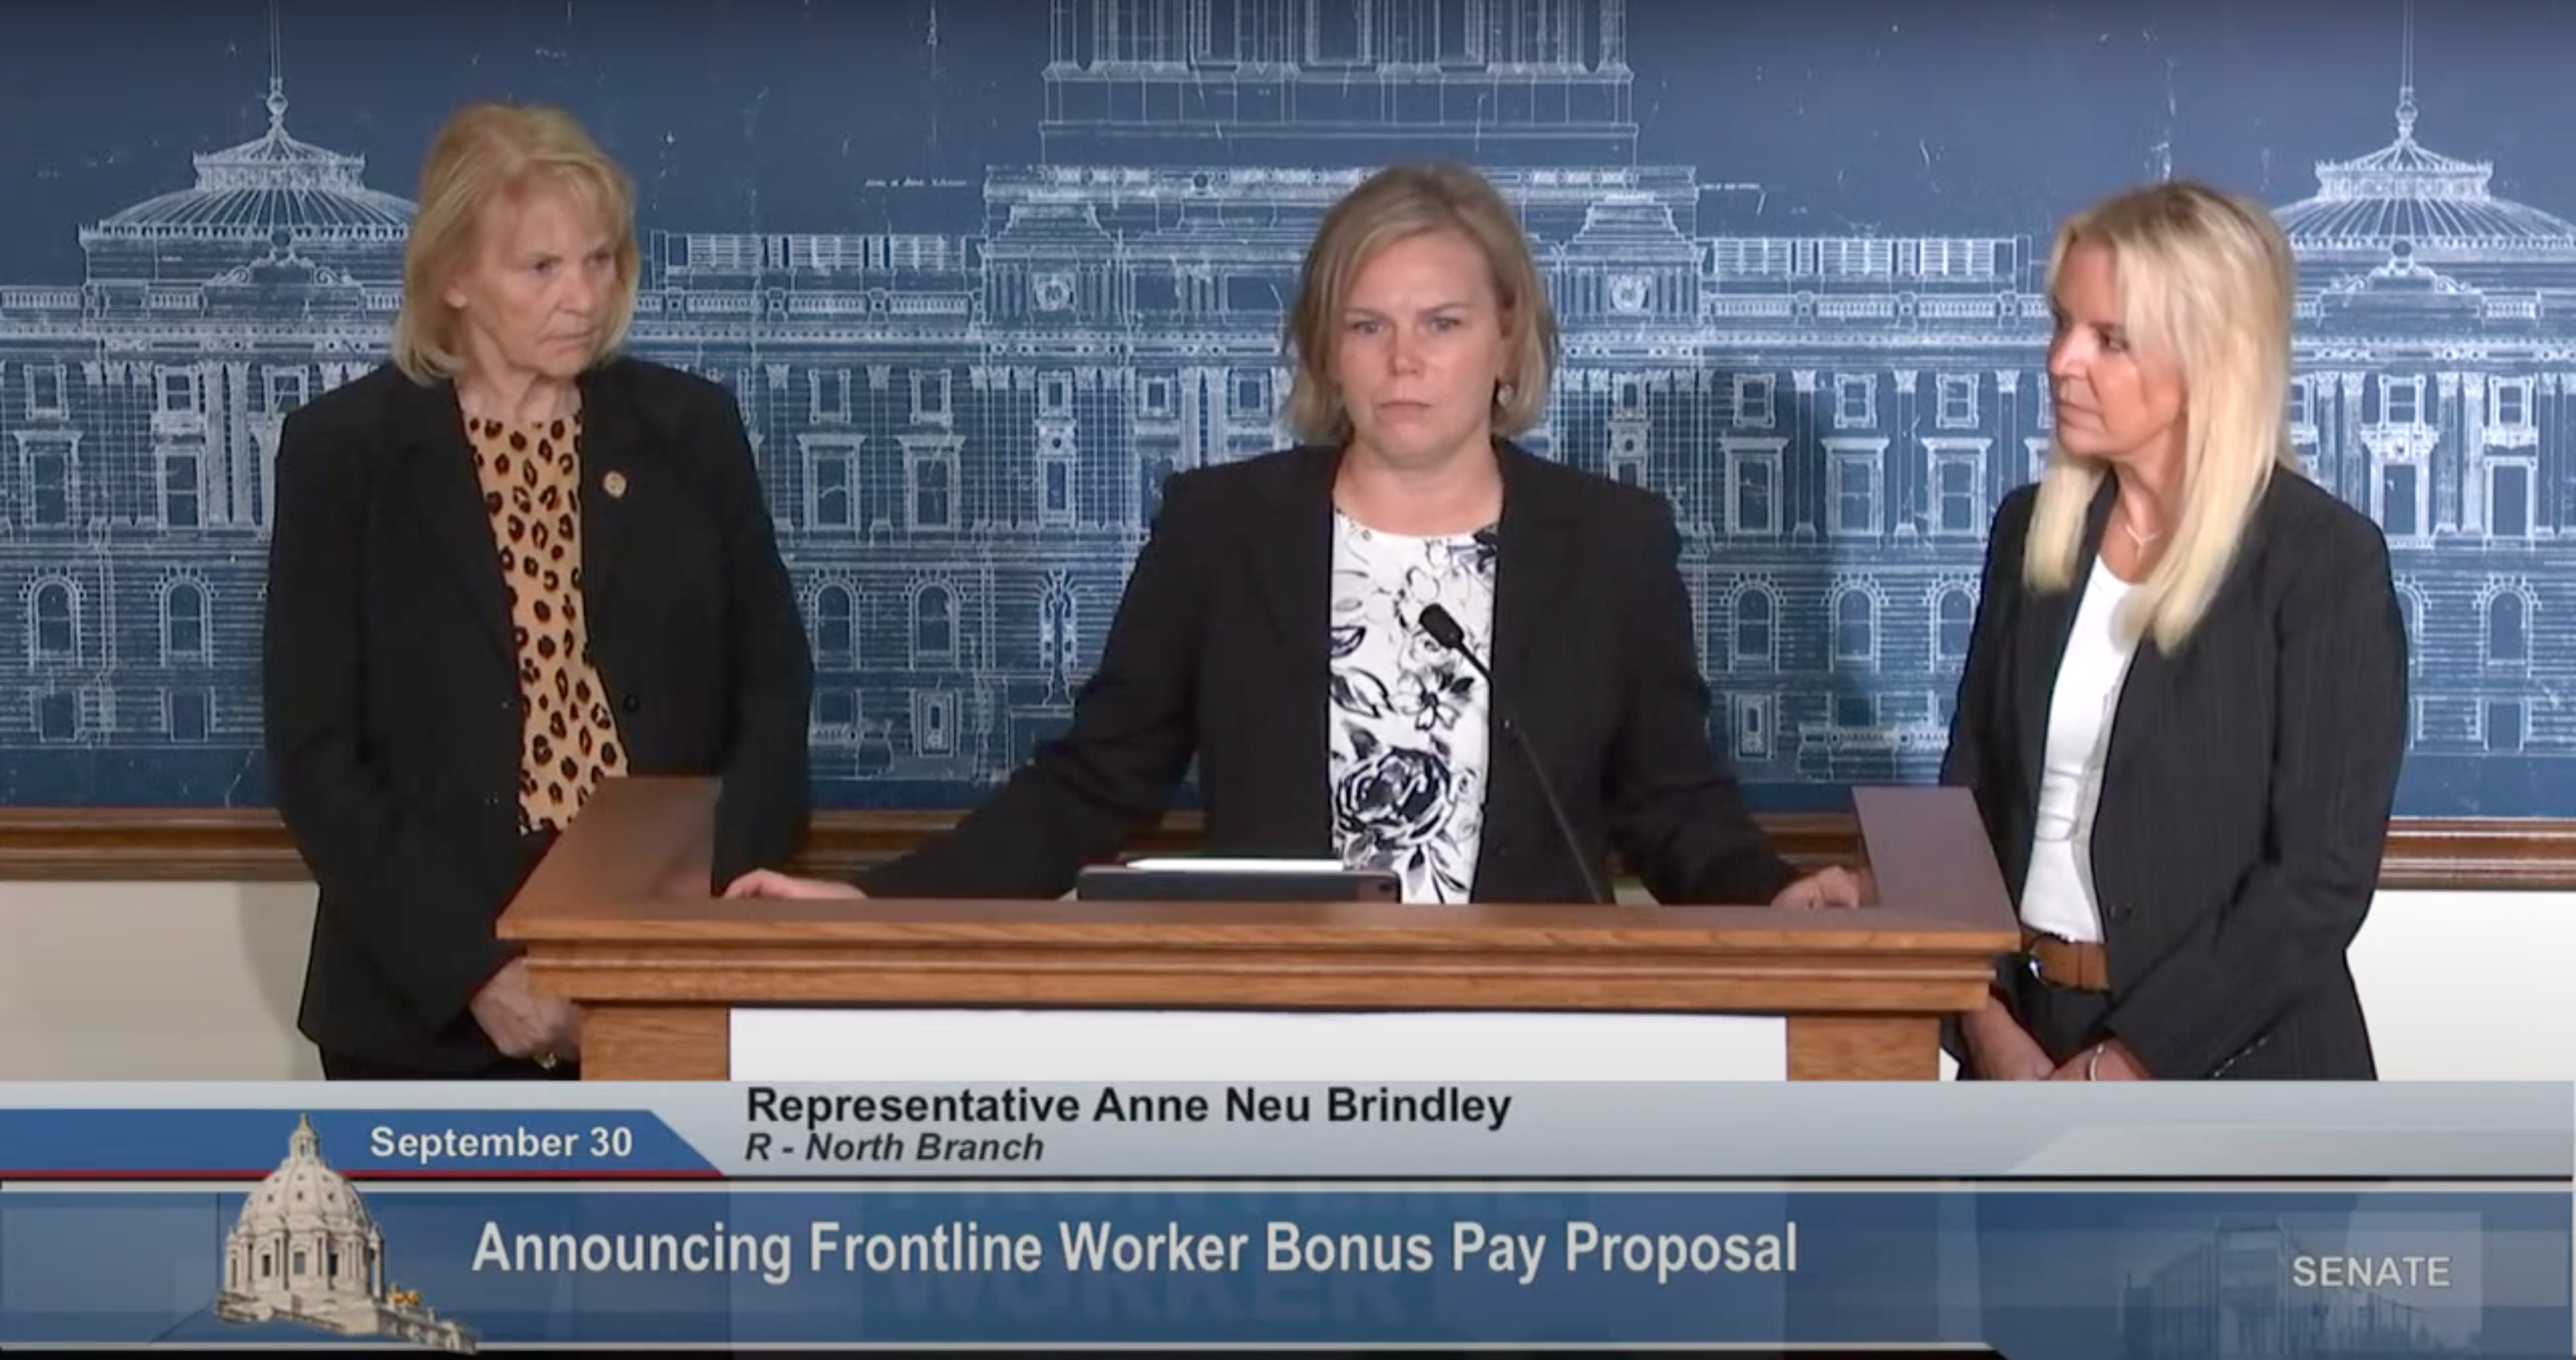 three blonde white women with black blazers stand behind a podium in front of a blue poster of the capitol building